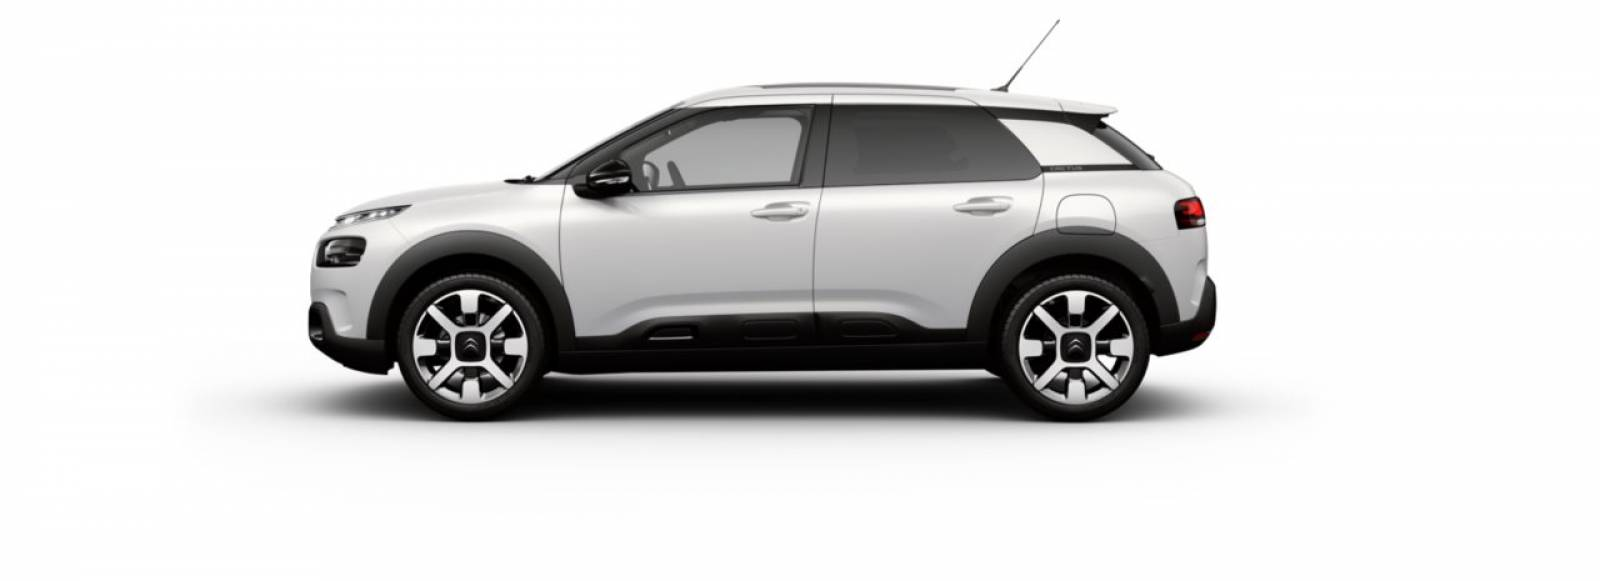 Nouveau citro n c4 cactus 2018 garage r paration auto for Garage auto pessac